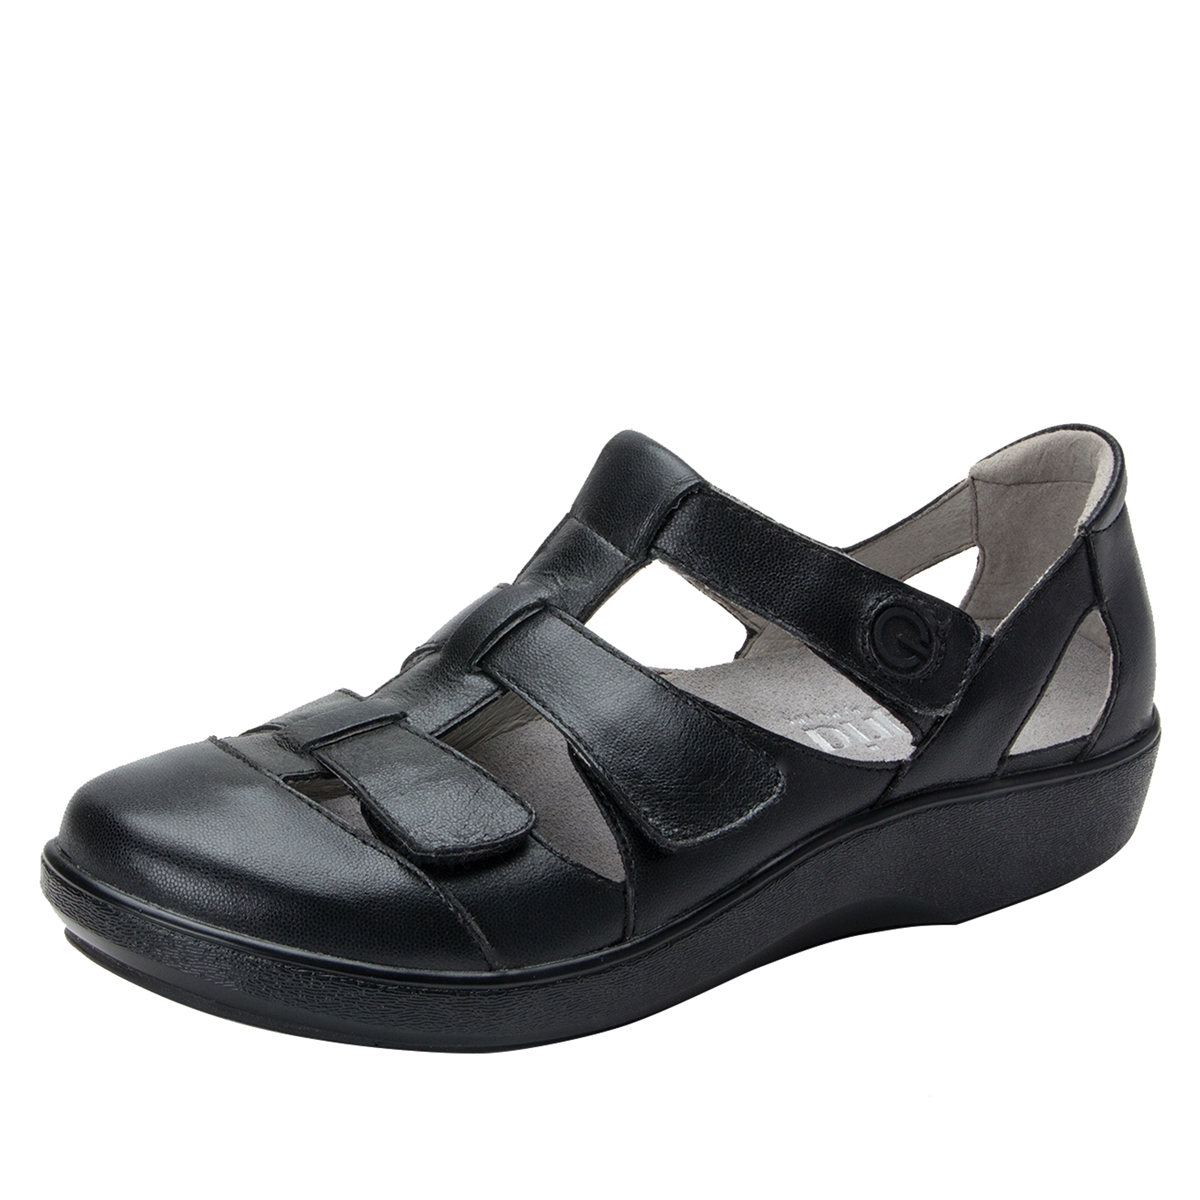 3aa1e4220c2eec Traq Treq Black Out - Alegria Shoes